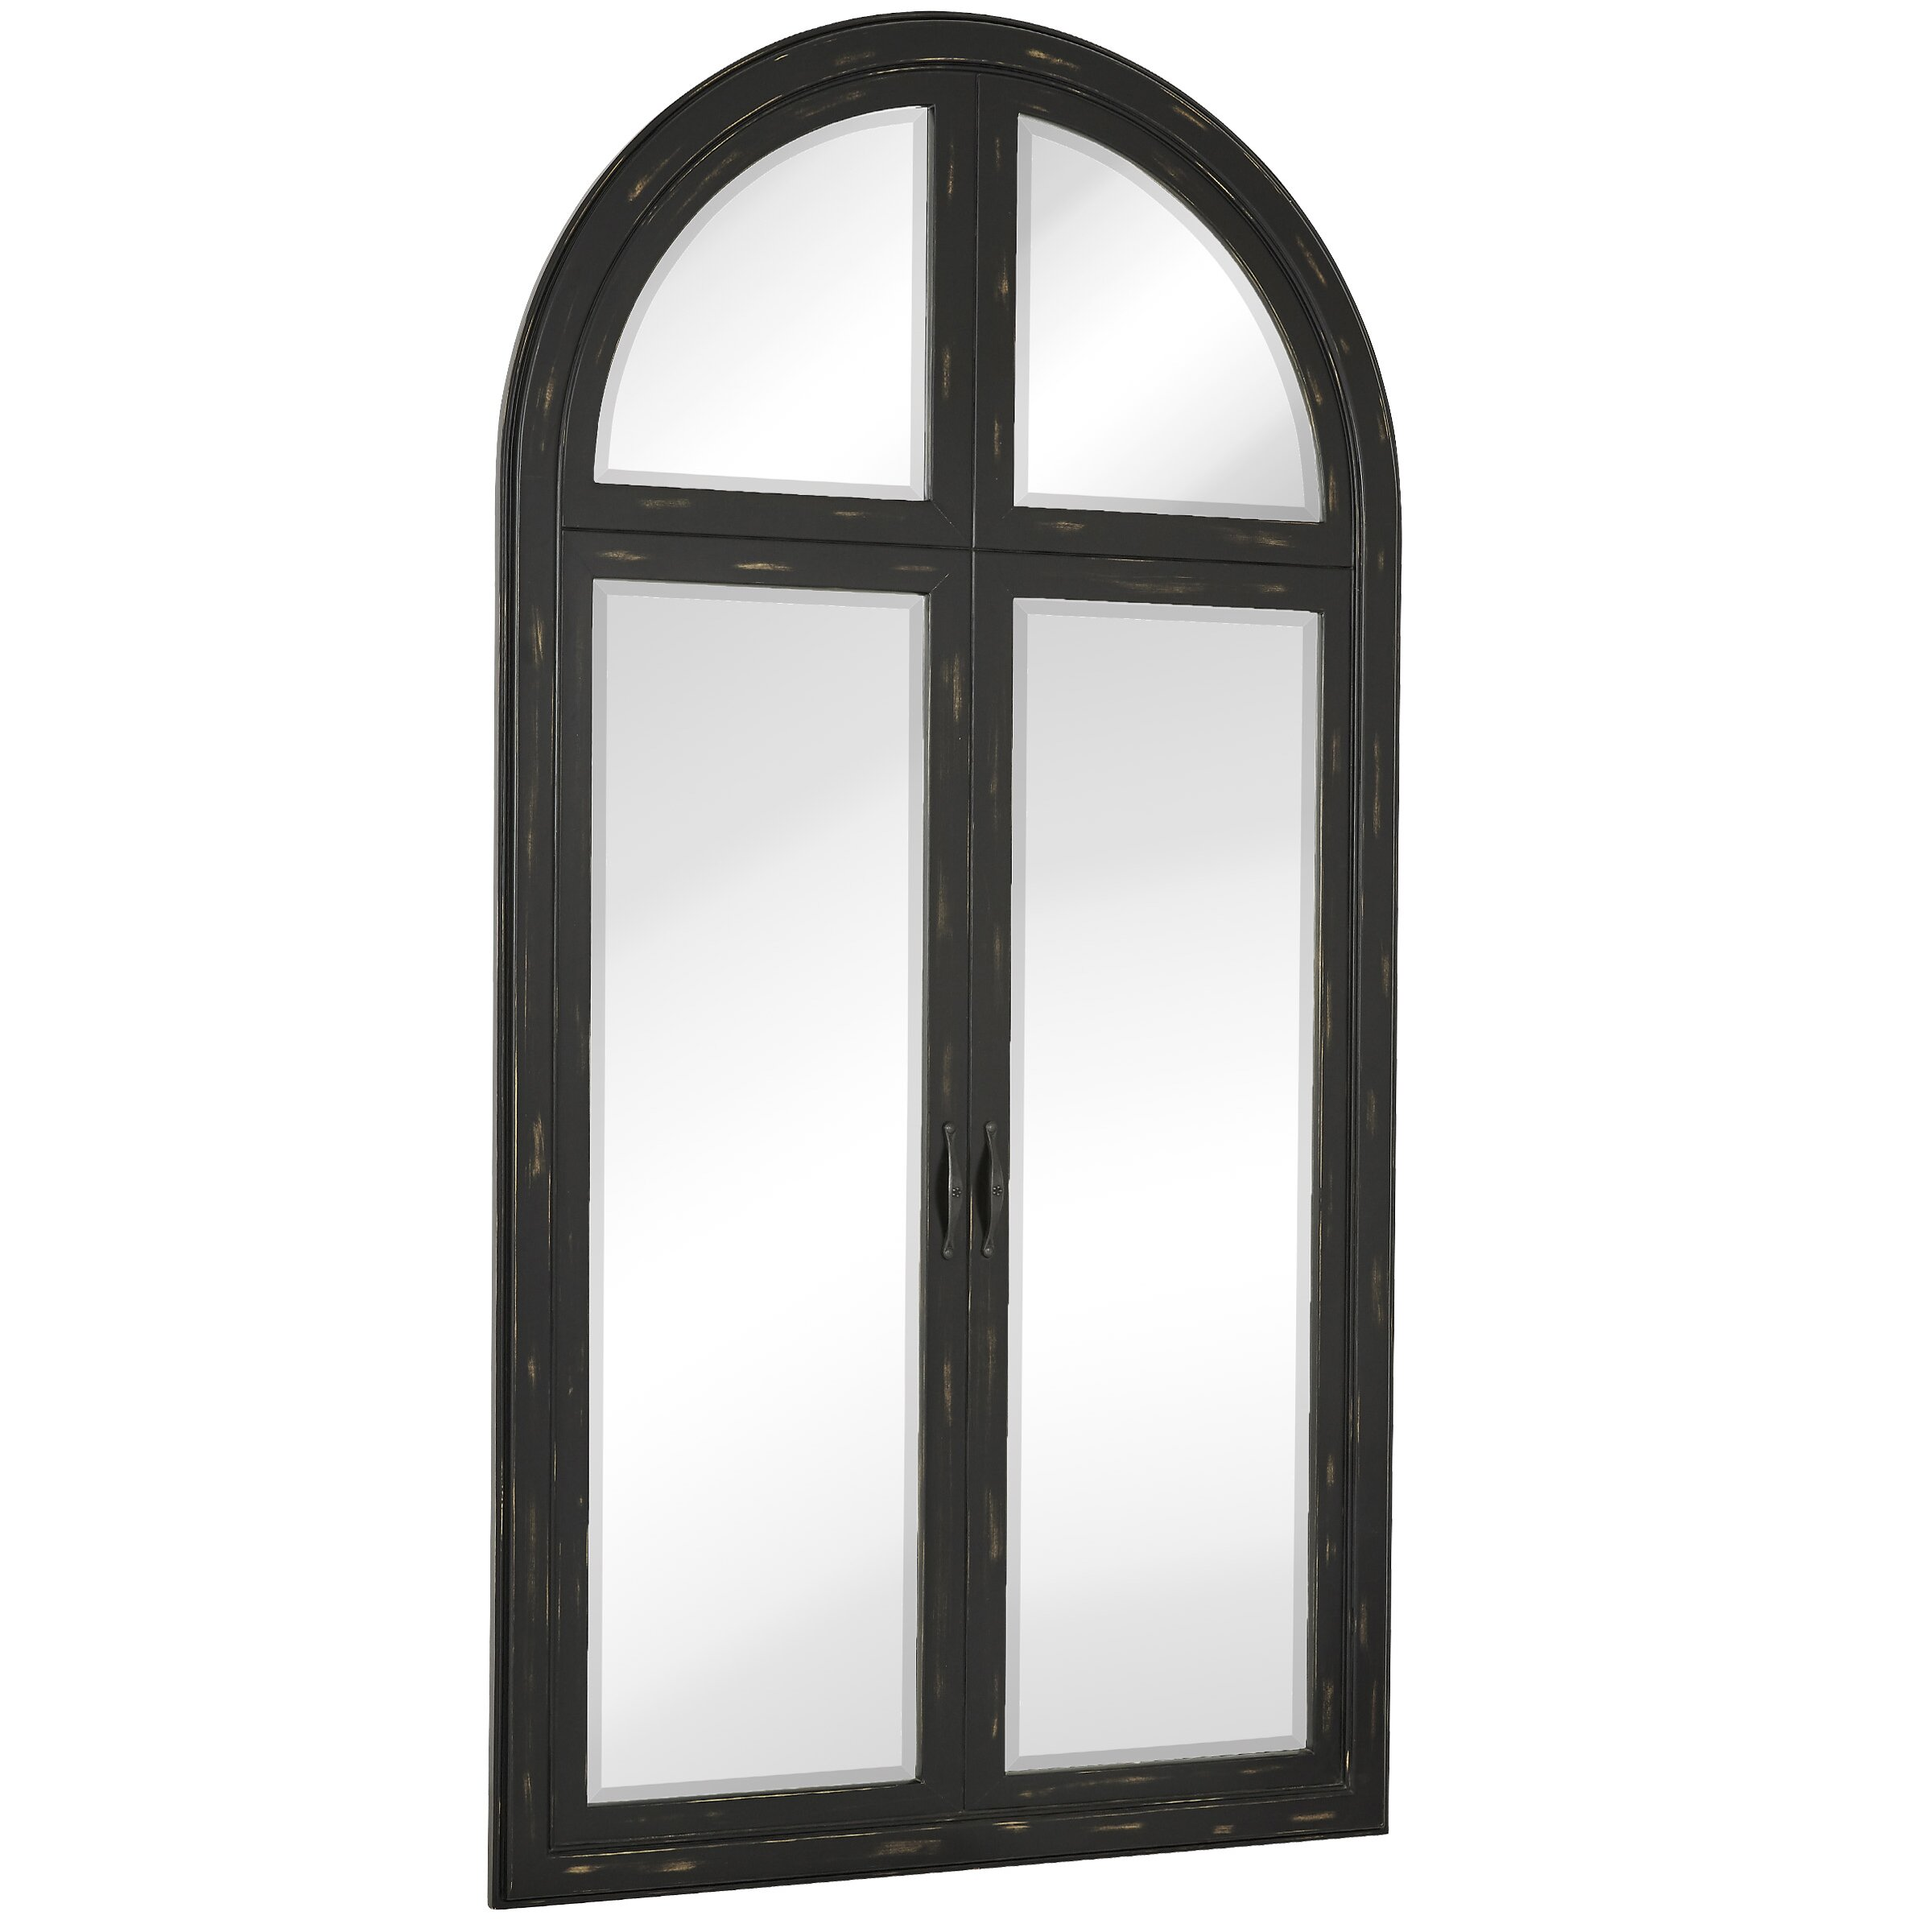 Large black beveled glass full length arched window pane Window pane mirror